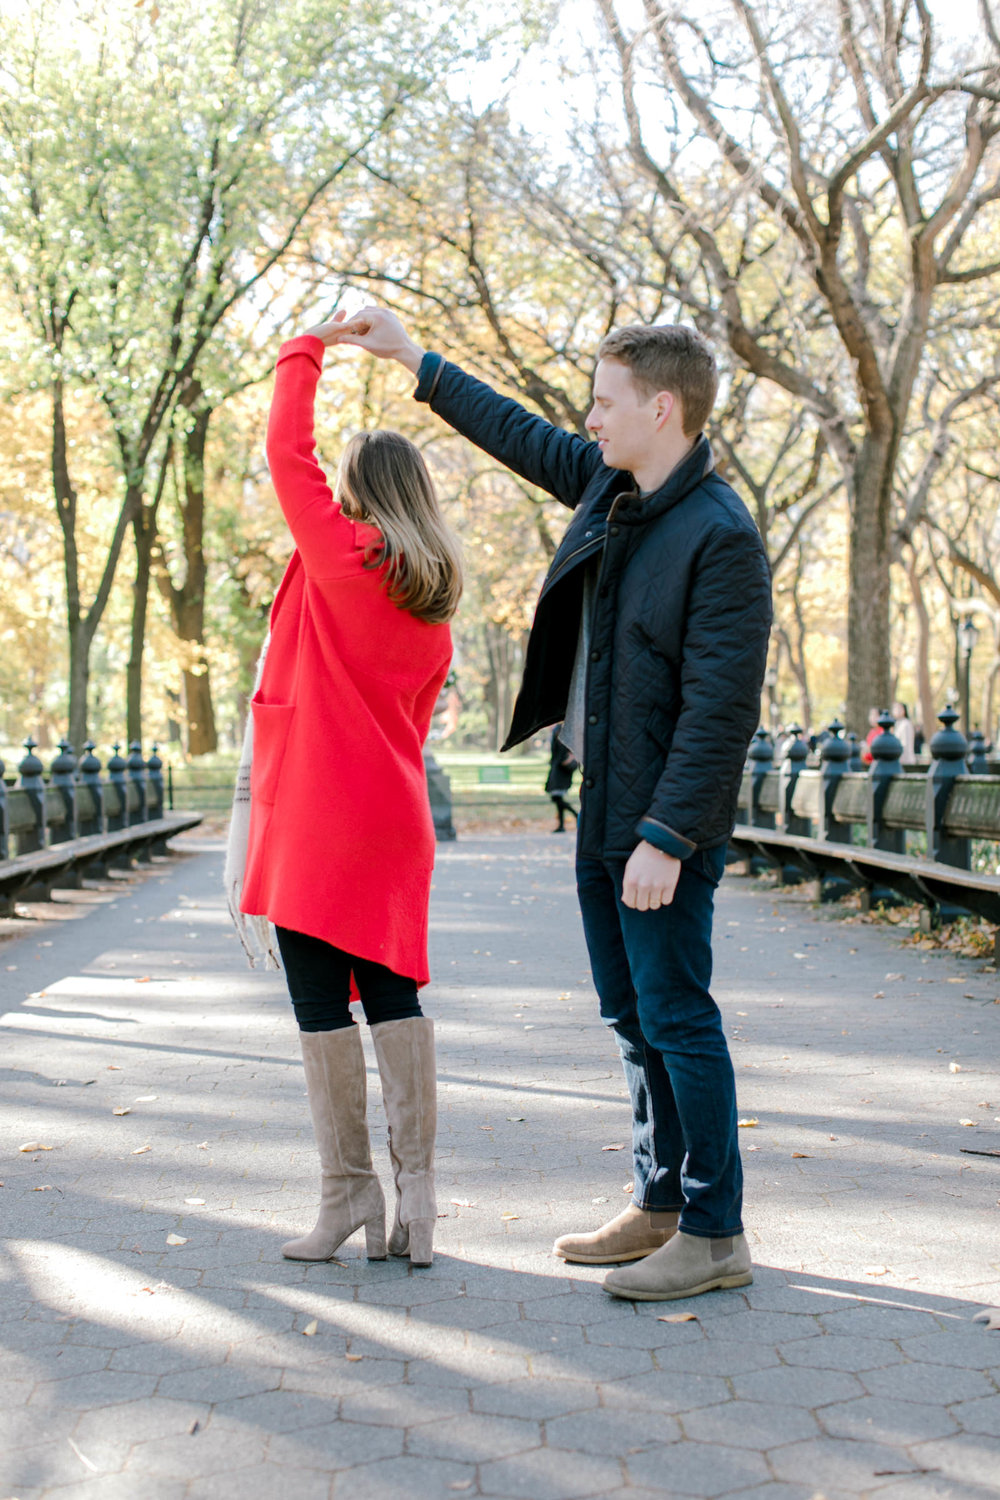 Central-park-fall-engagement-session-by Tanya Isaeva-66.jpg